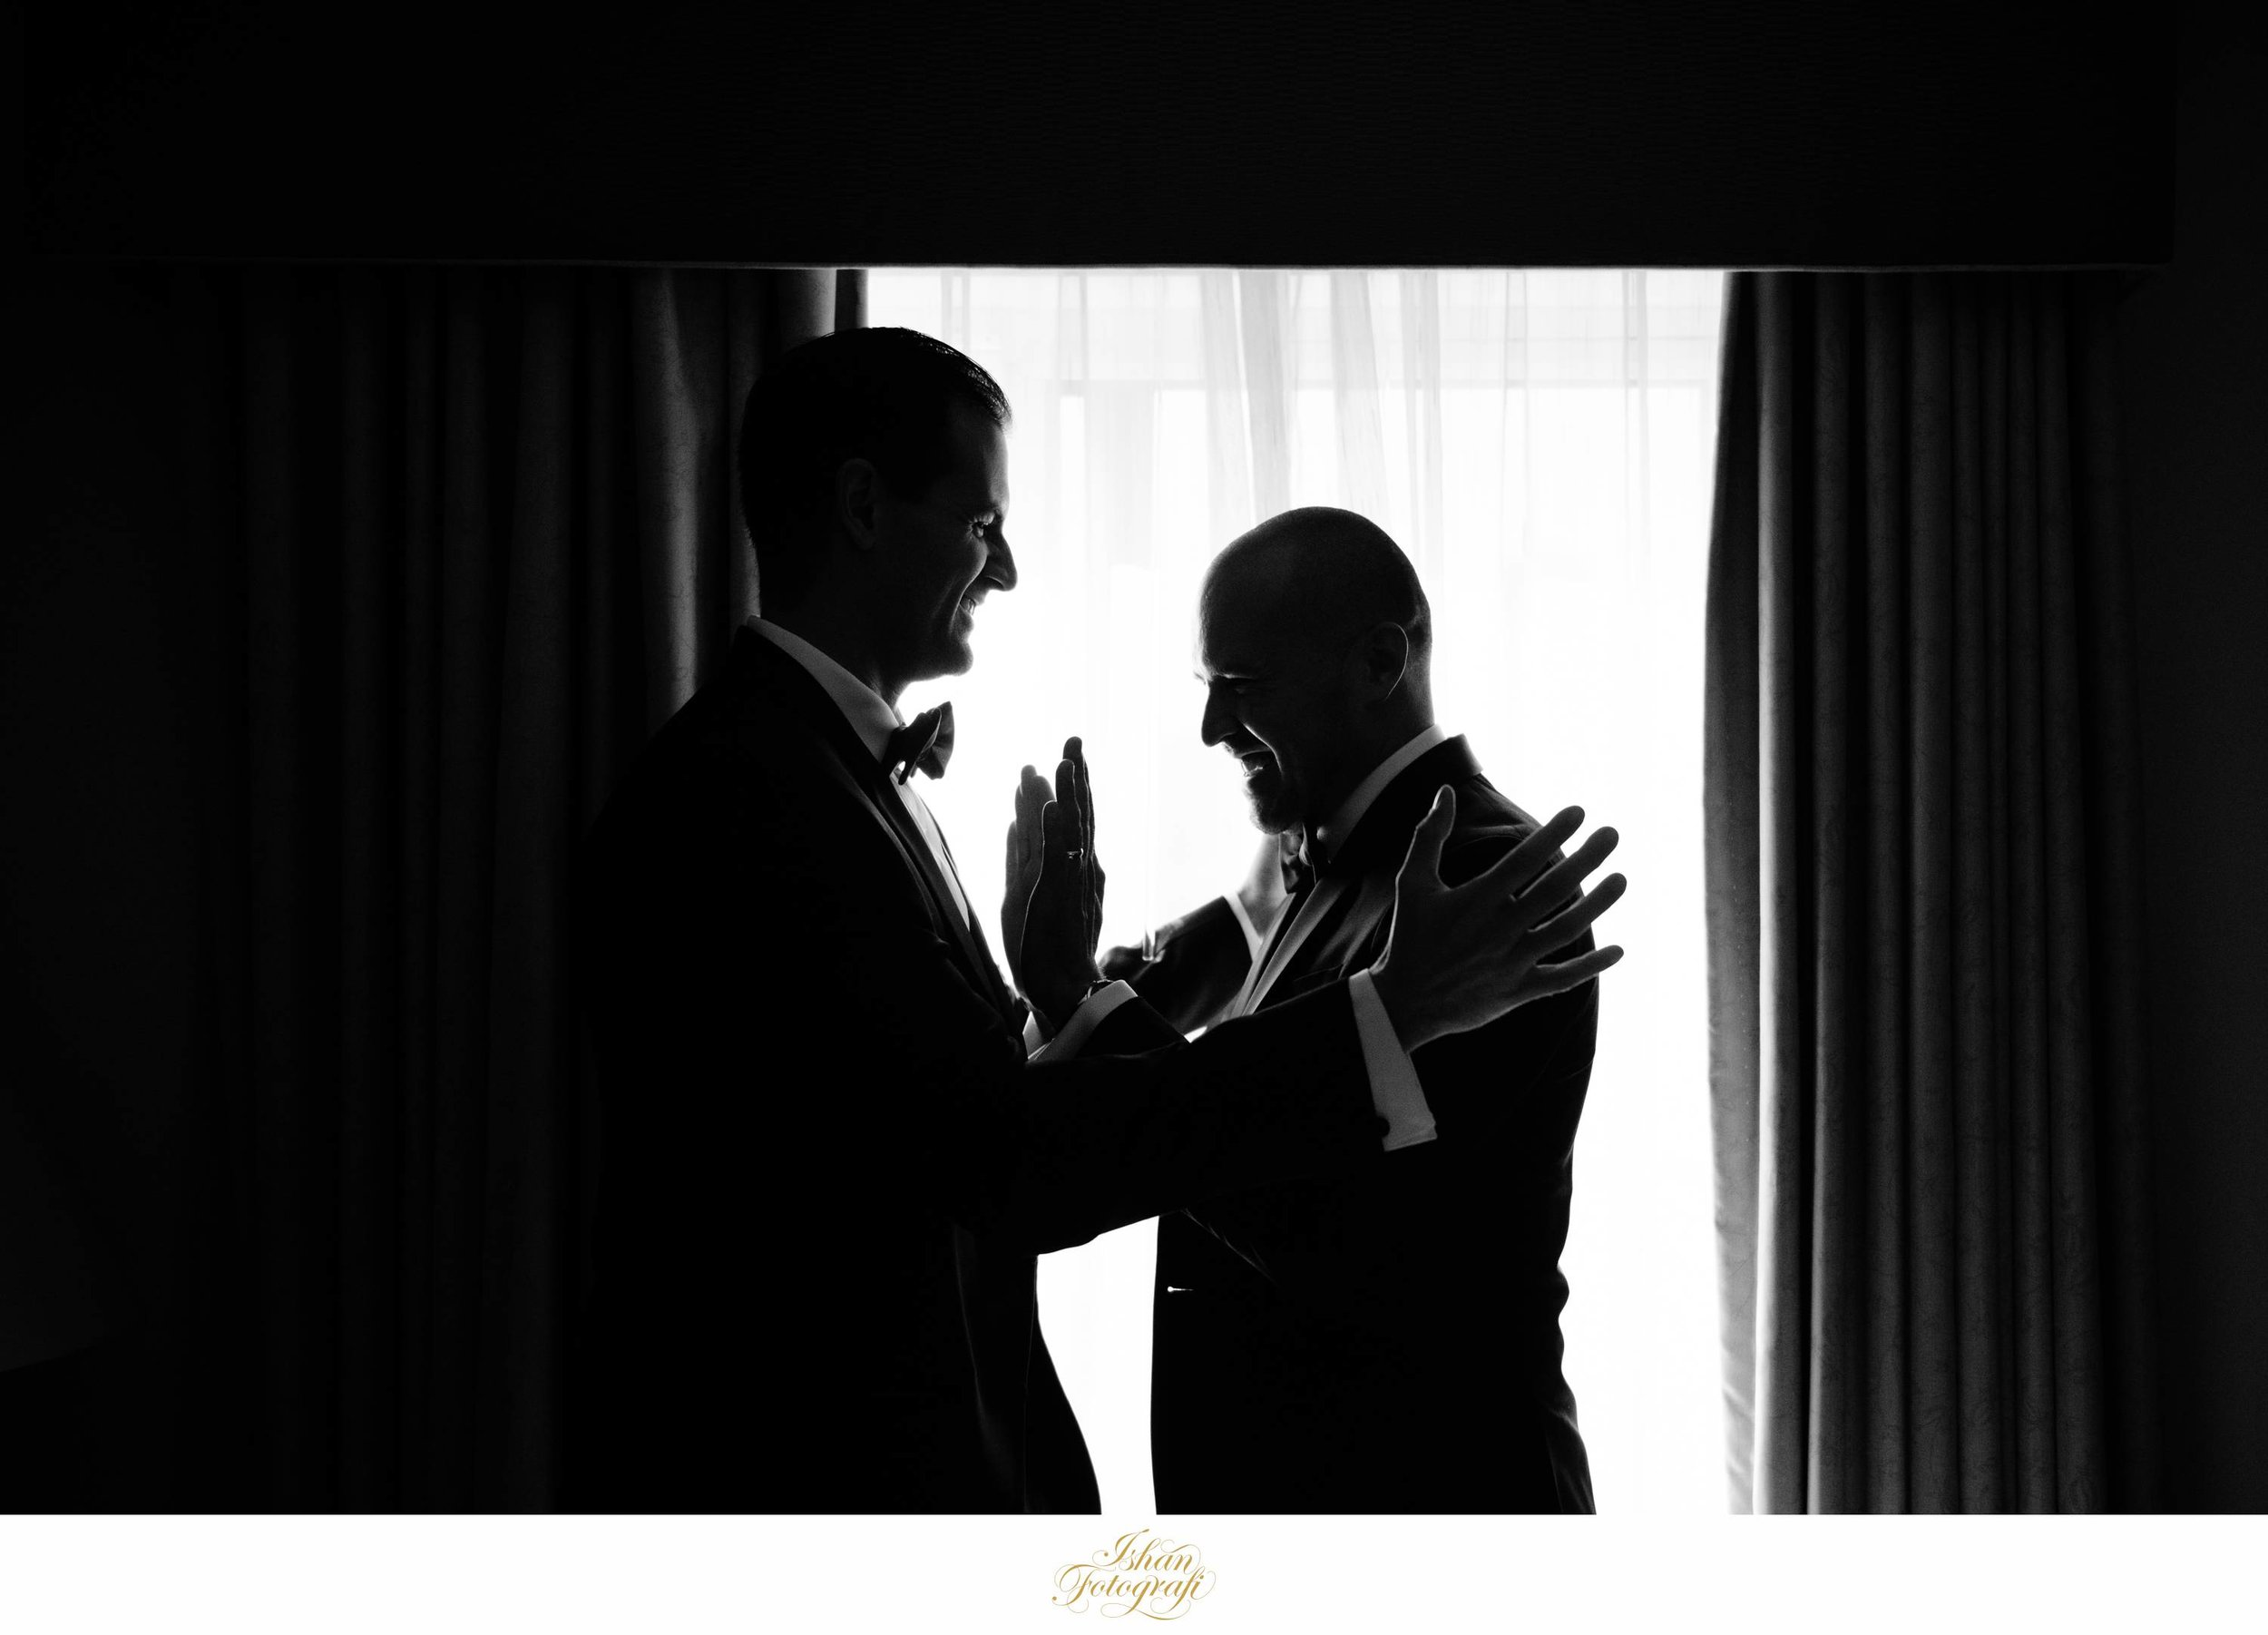 The groom and his best man sharing a laugh together. The groom had planned to get ready with his groomsmen at a hotel in North Bergen located close to The Waterside Restaurant which was their reception venue.